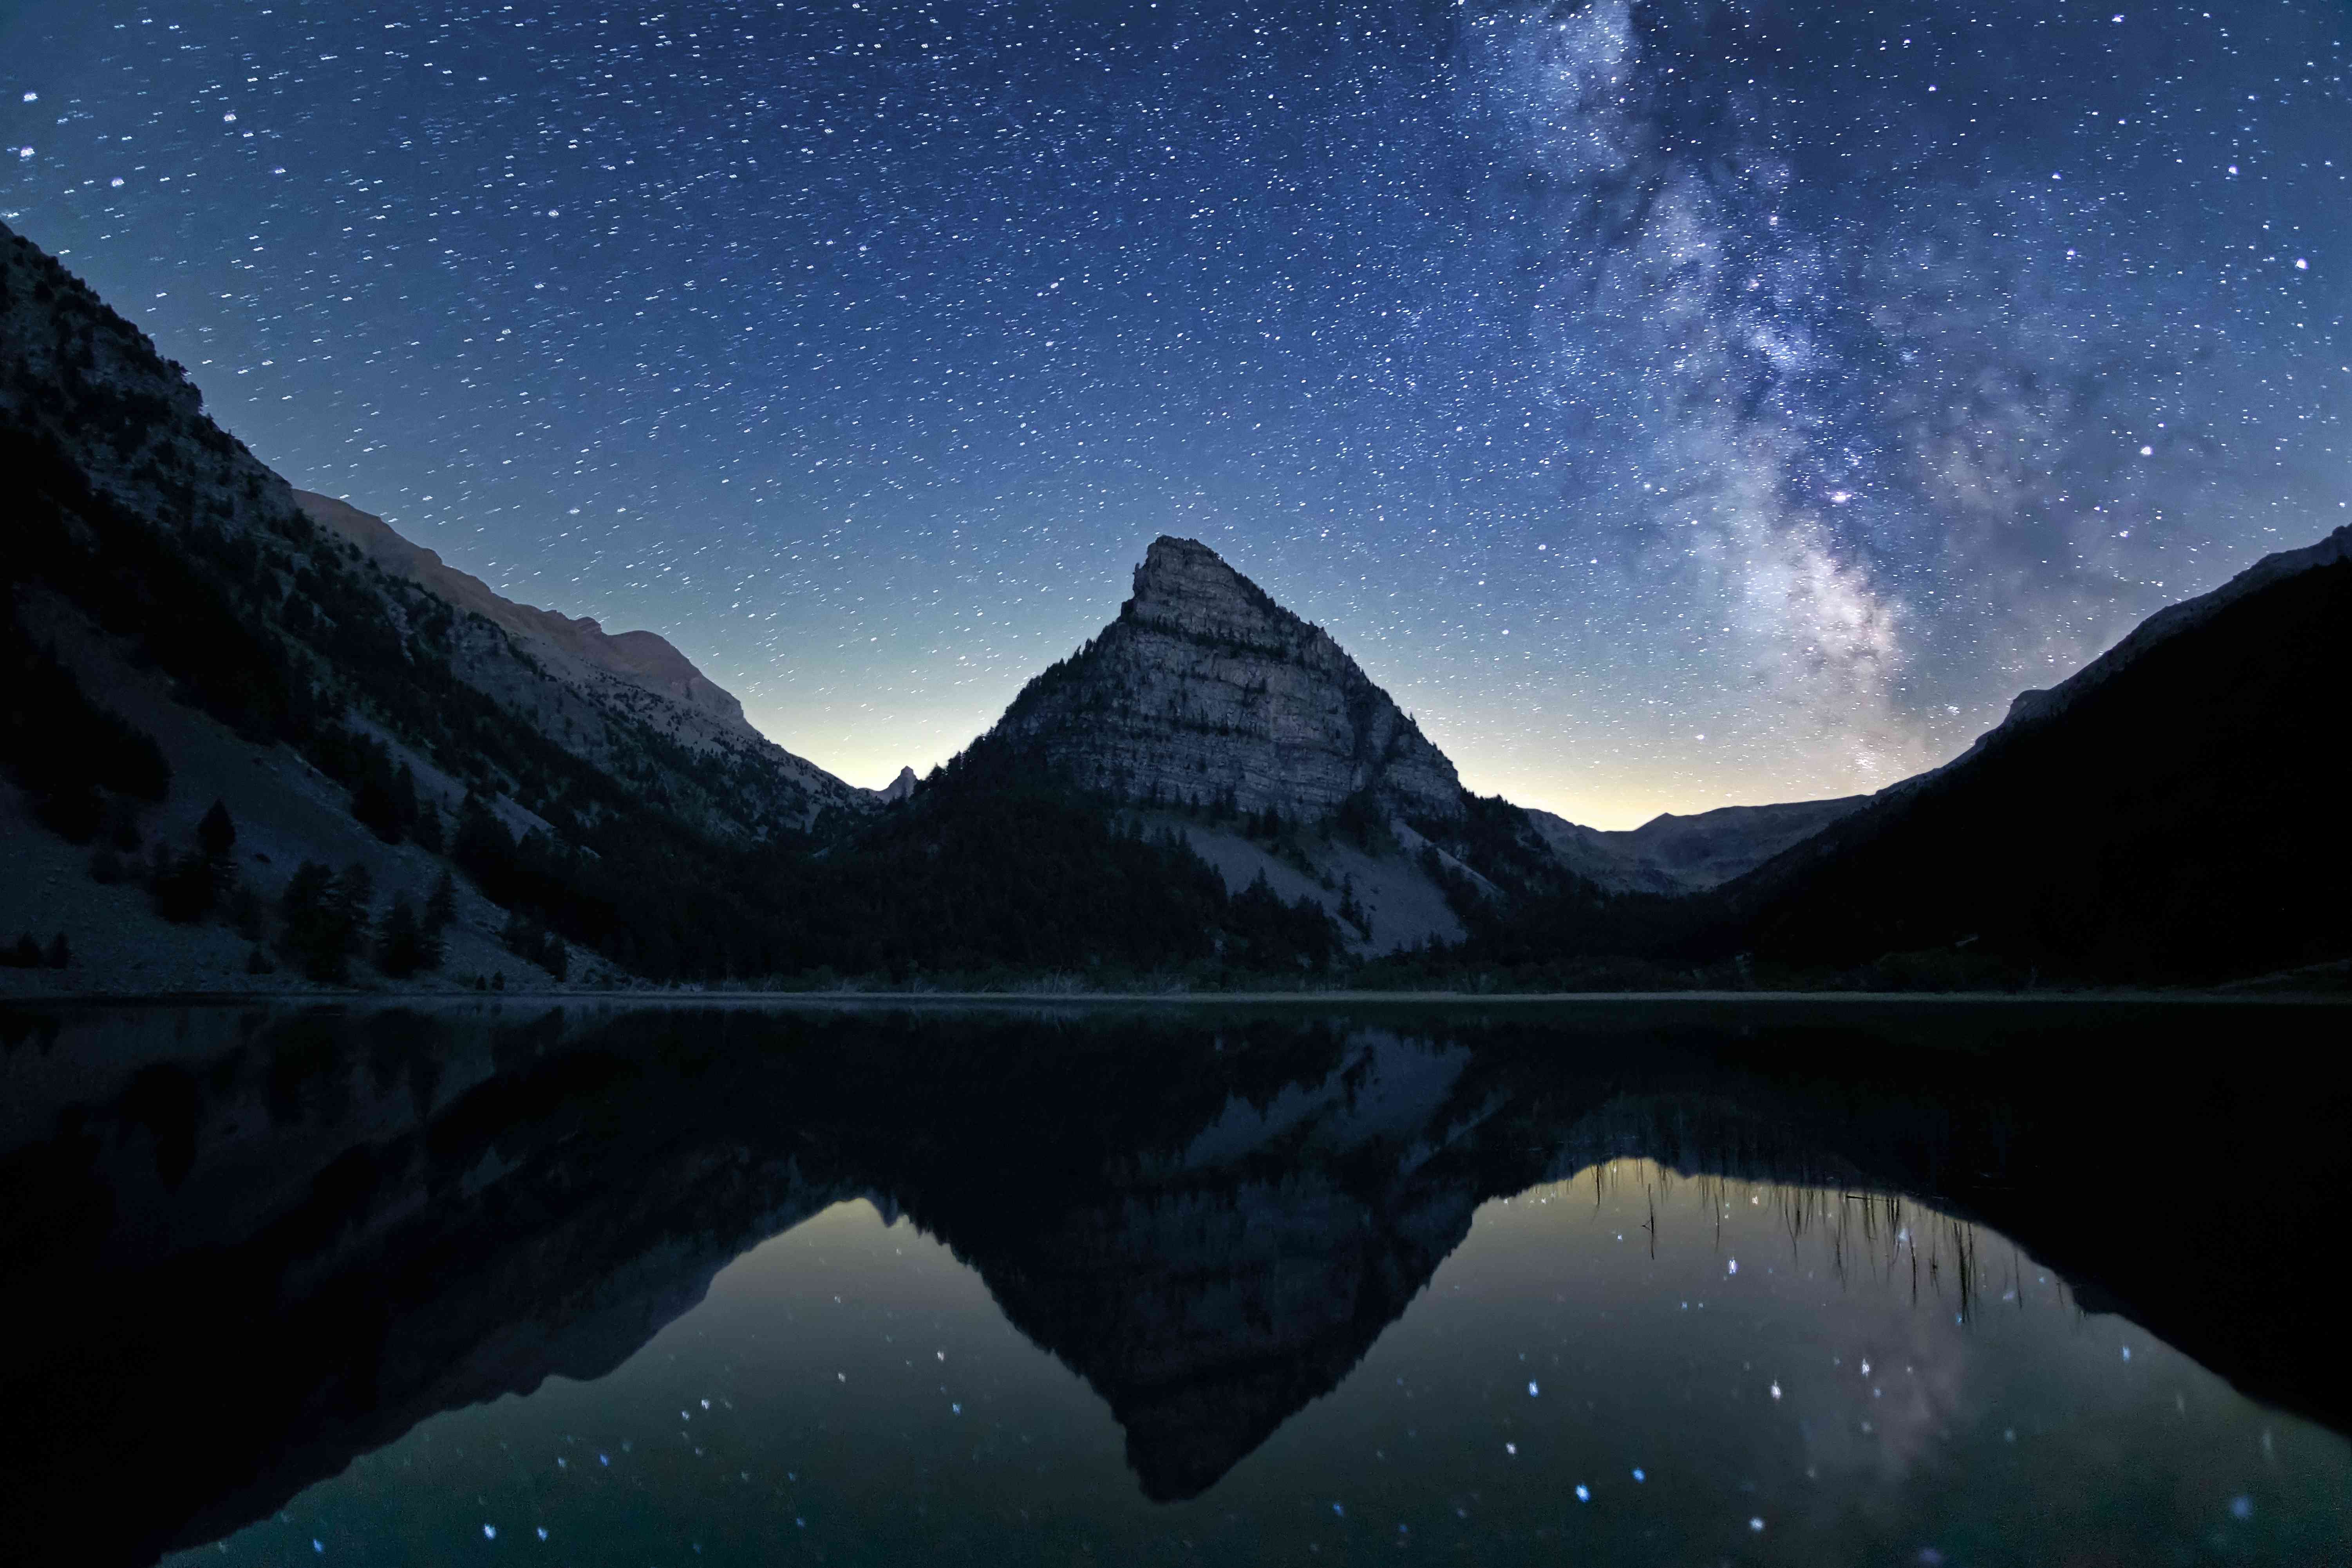 Milky Way and stars above snowy mountain and lake